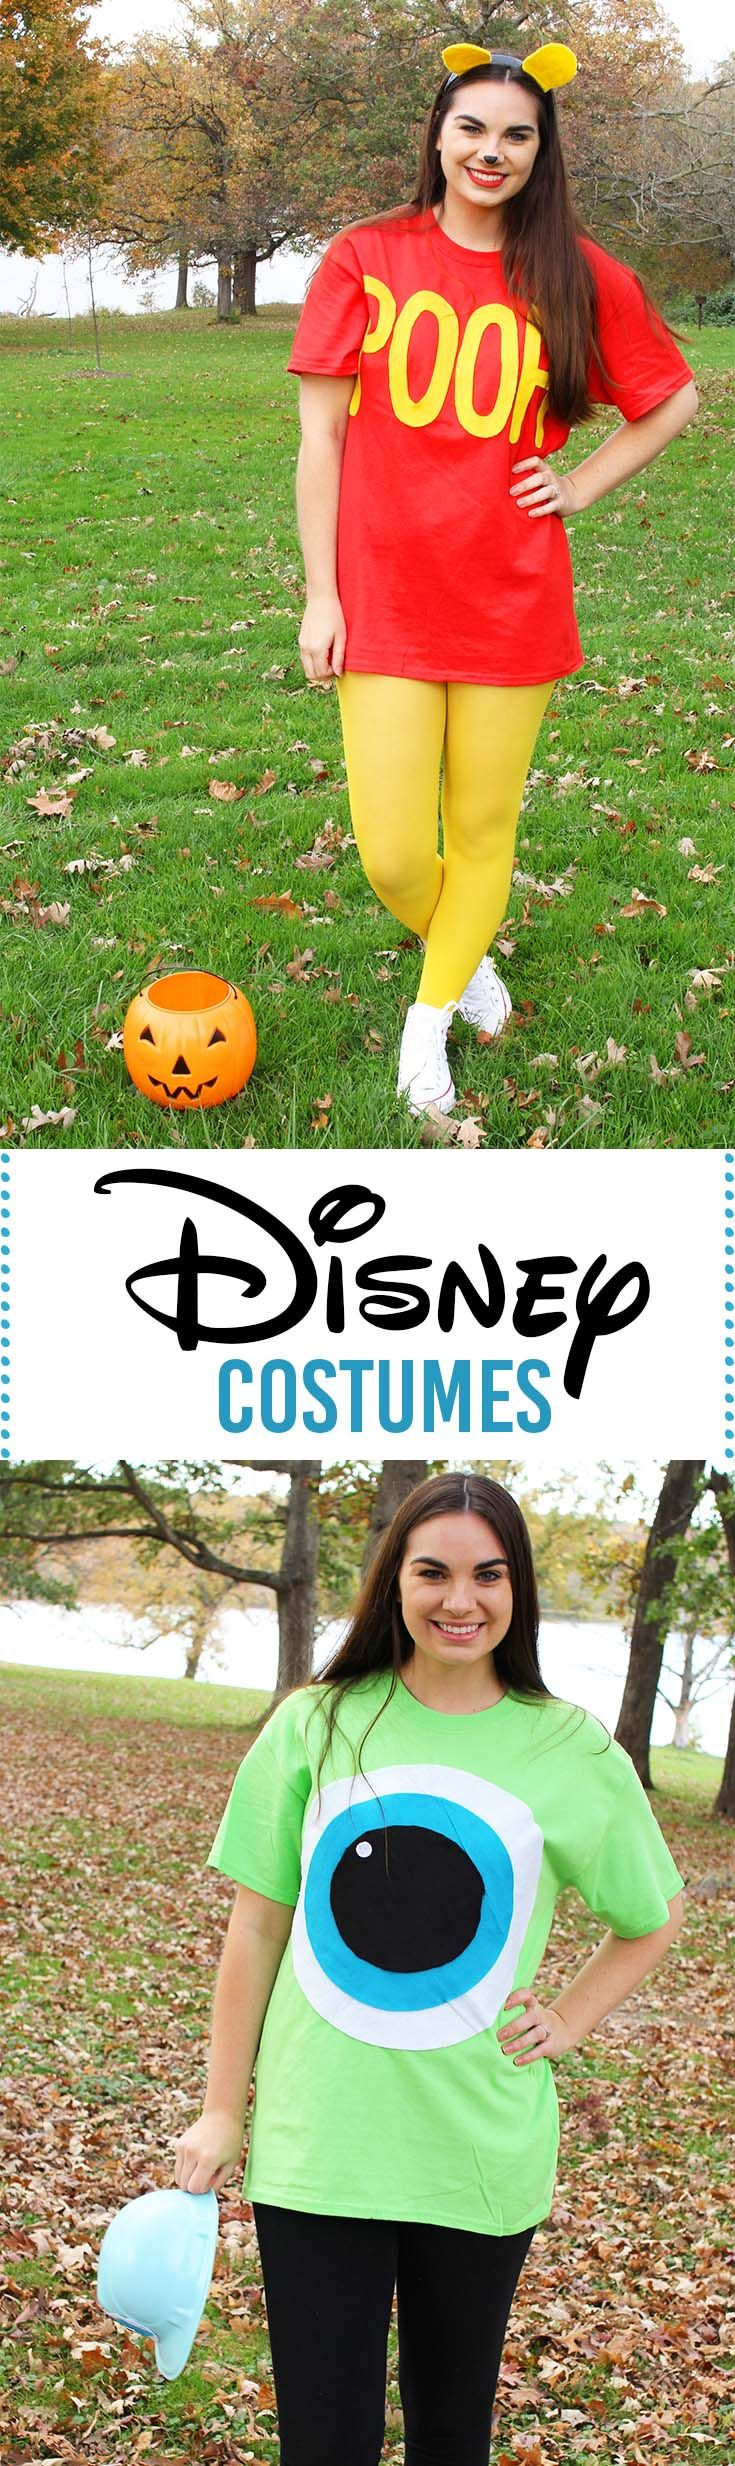 diy last minute disney halloween costumes super easy and inexpensive disney character costumes. Black Bedroom Furniture Sets. Home Design Ideas